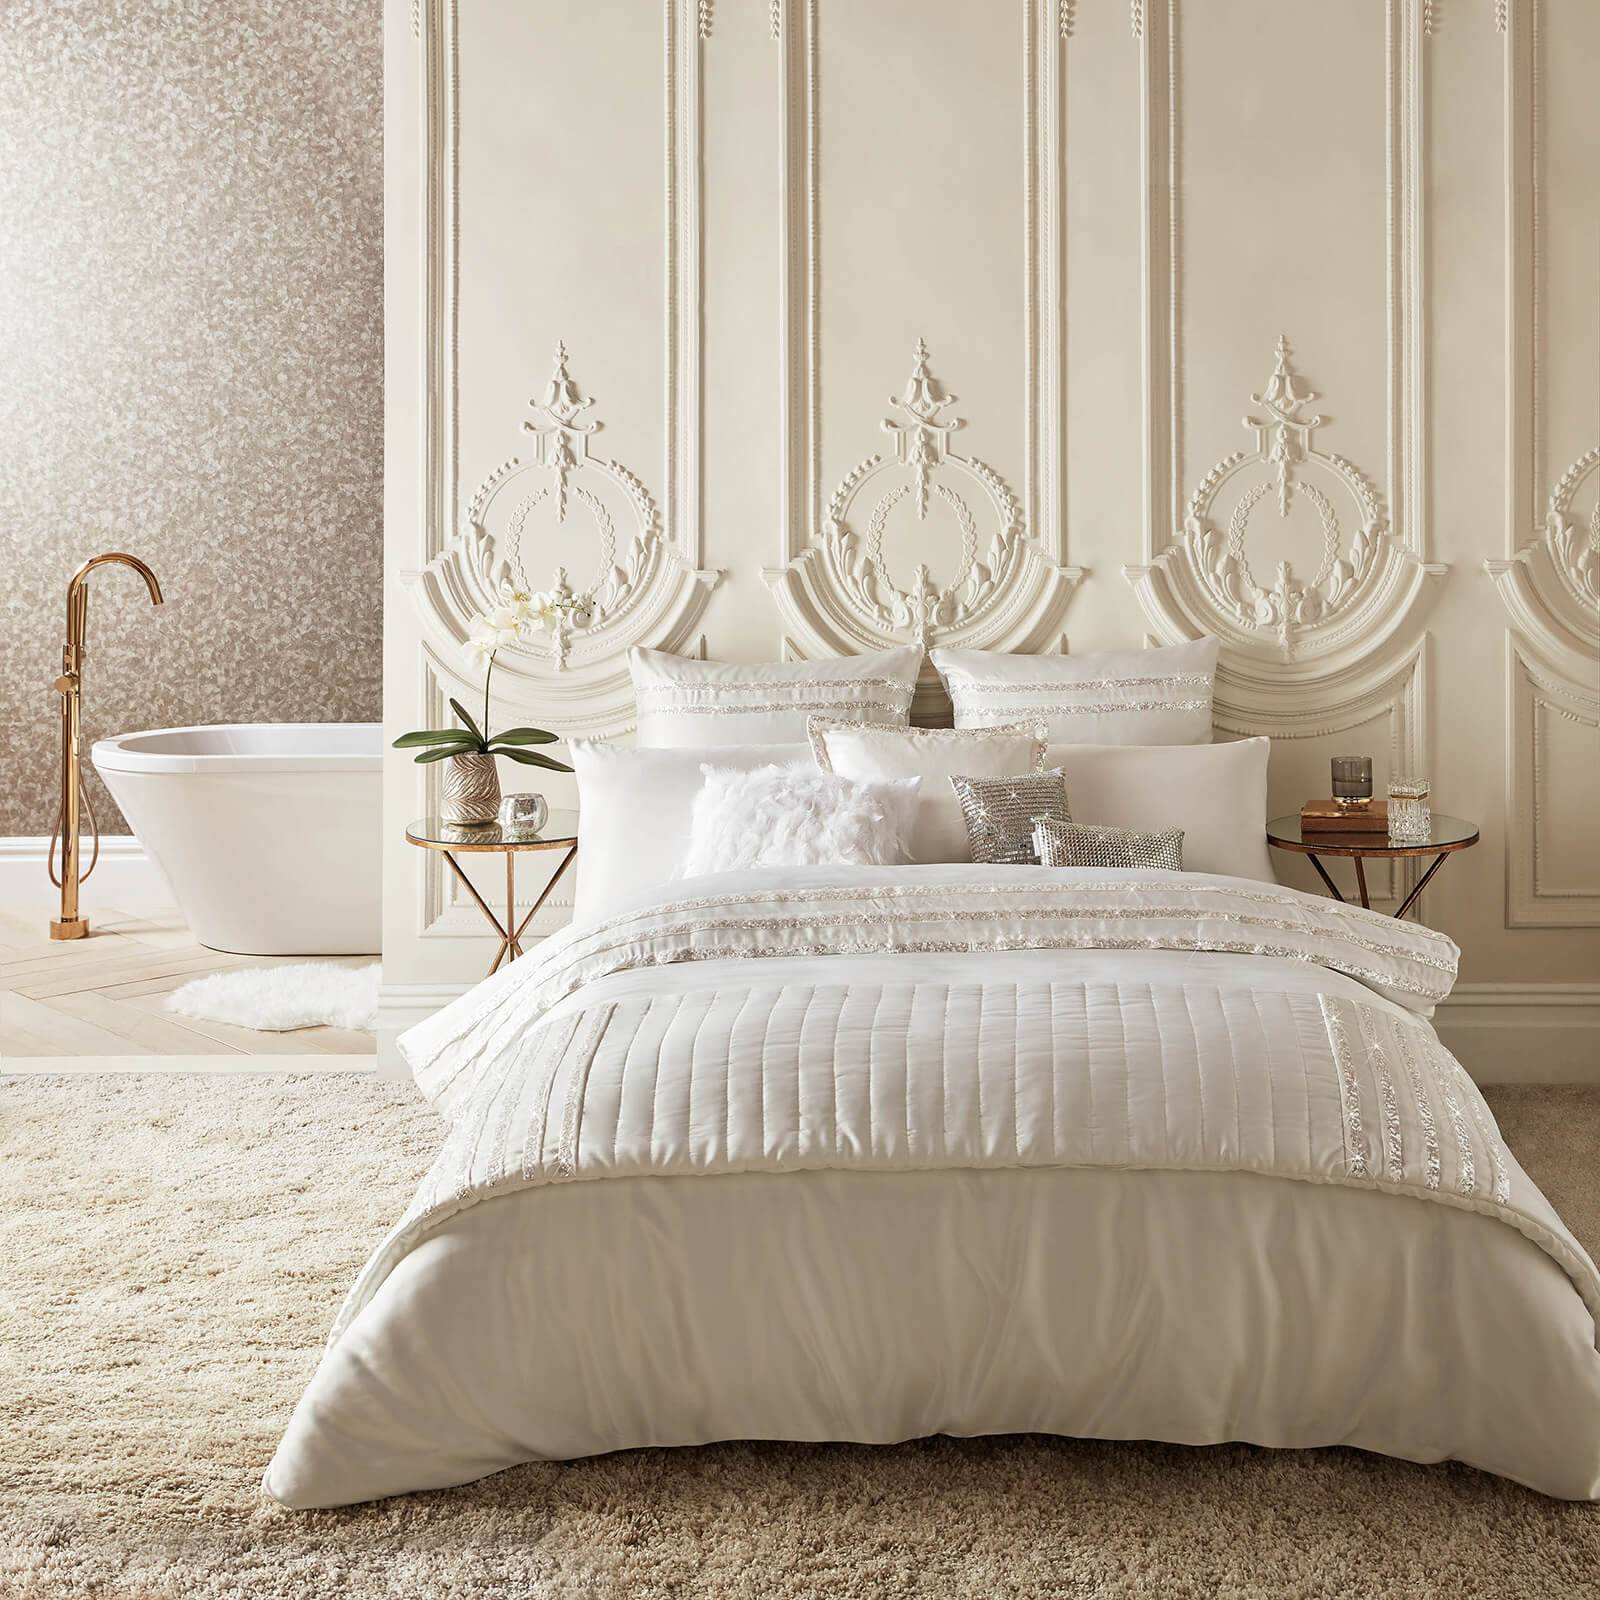 Kylie Minogue Bardot Quilt Duvet Cover - Oyster - Double